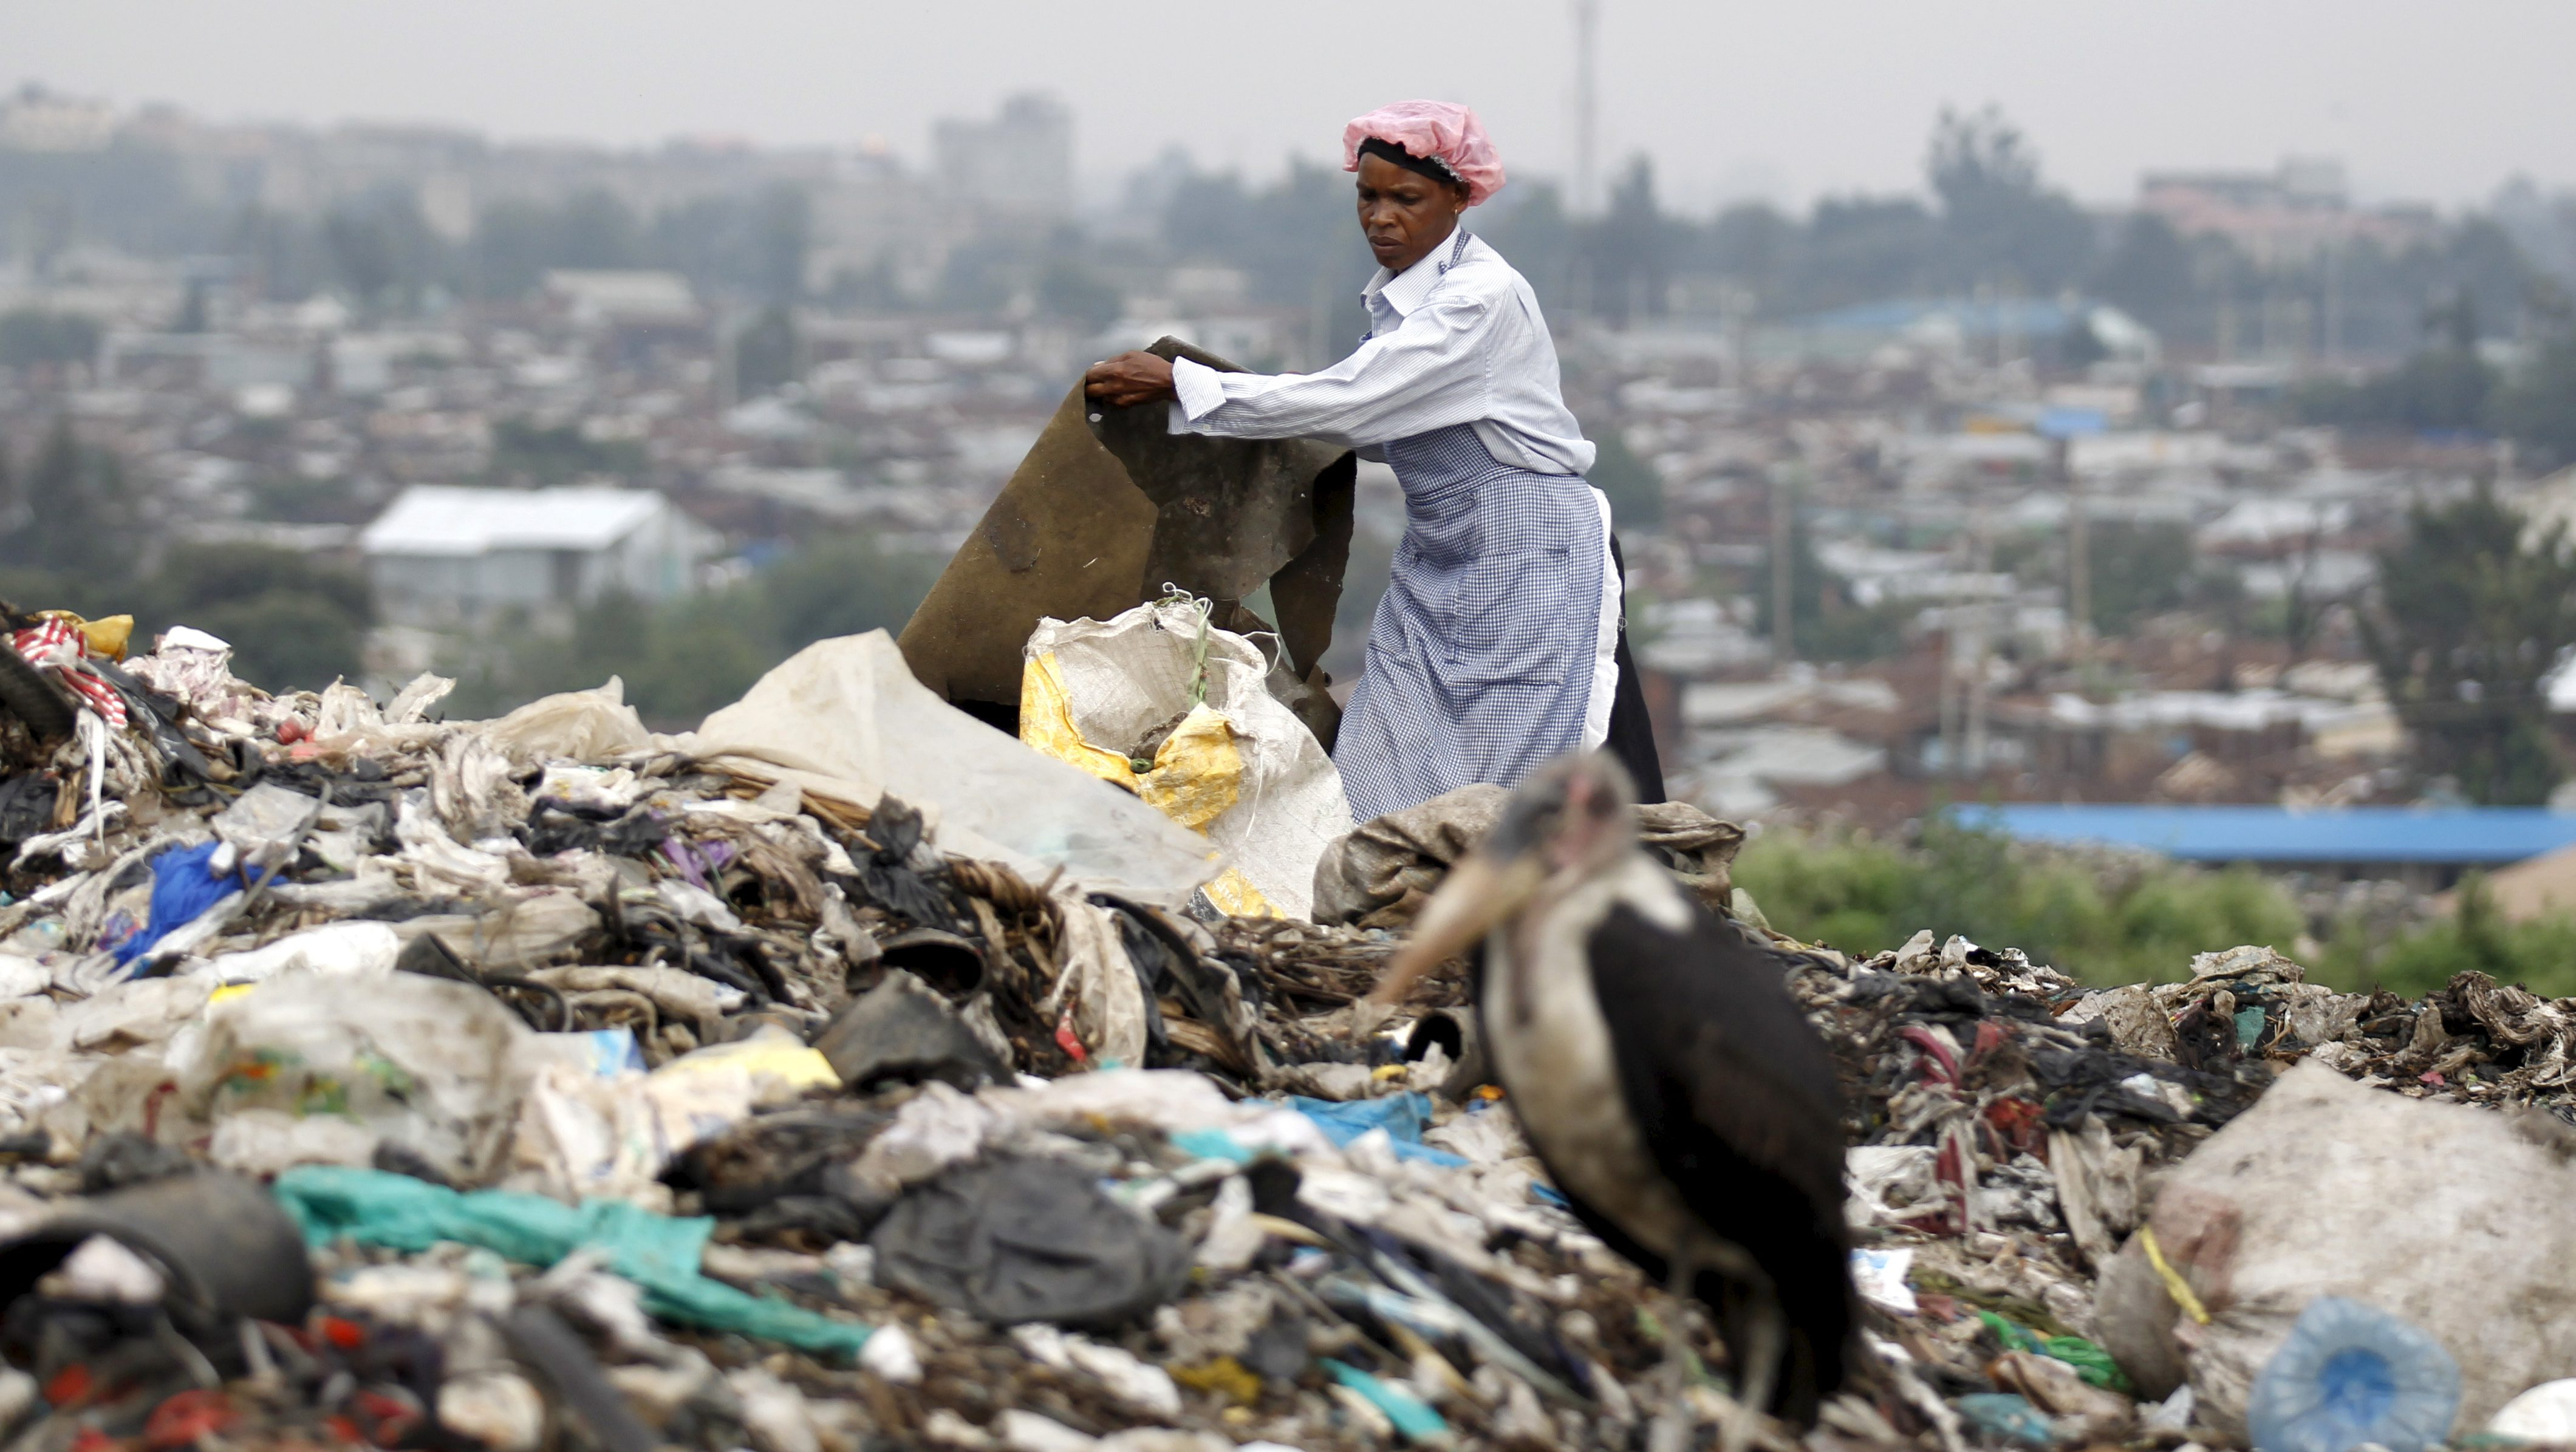 A woman scavenges for recyclable materials at the Dandora dumping site on the outskirts of Kenya's capital Nairobi